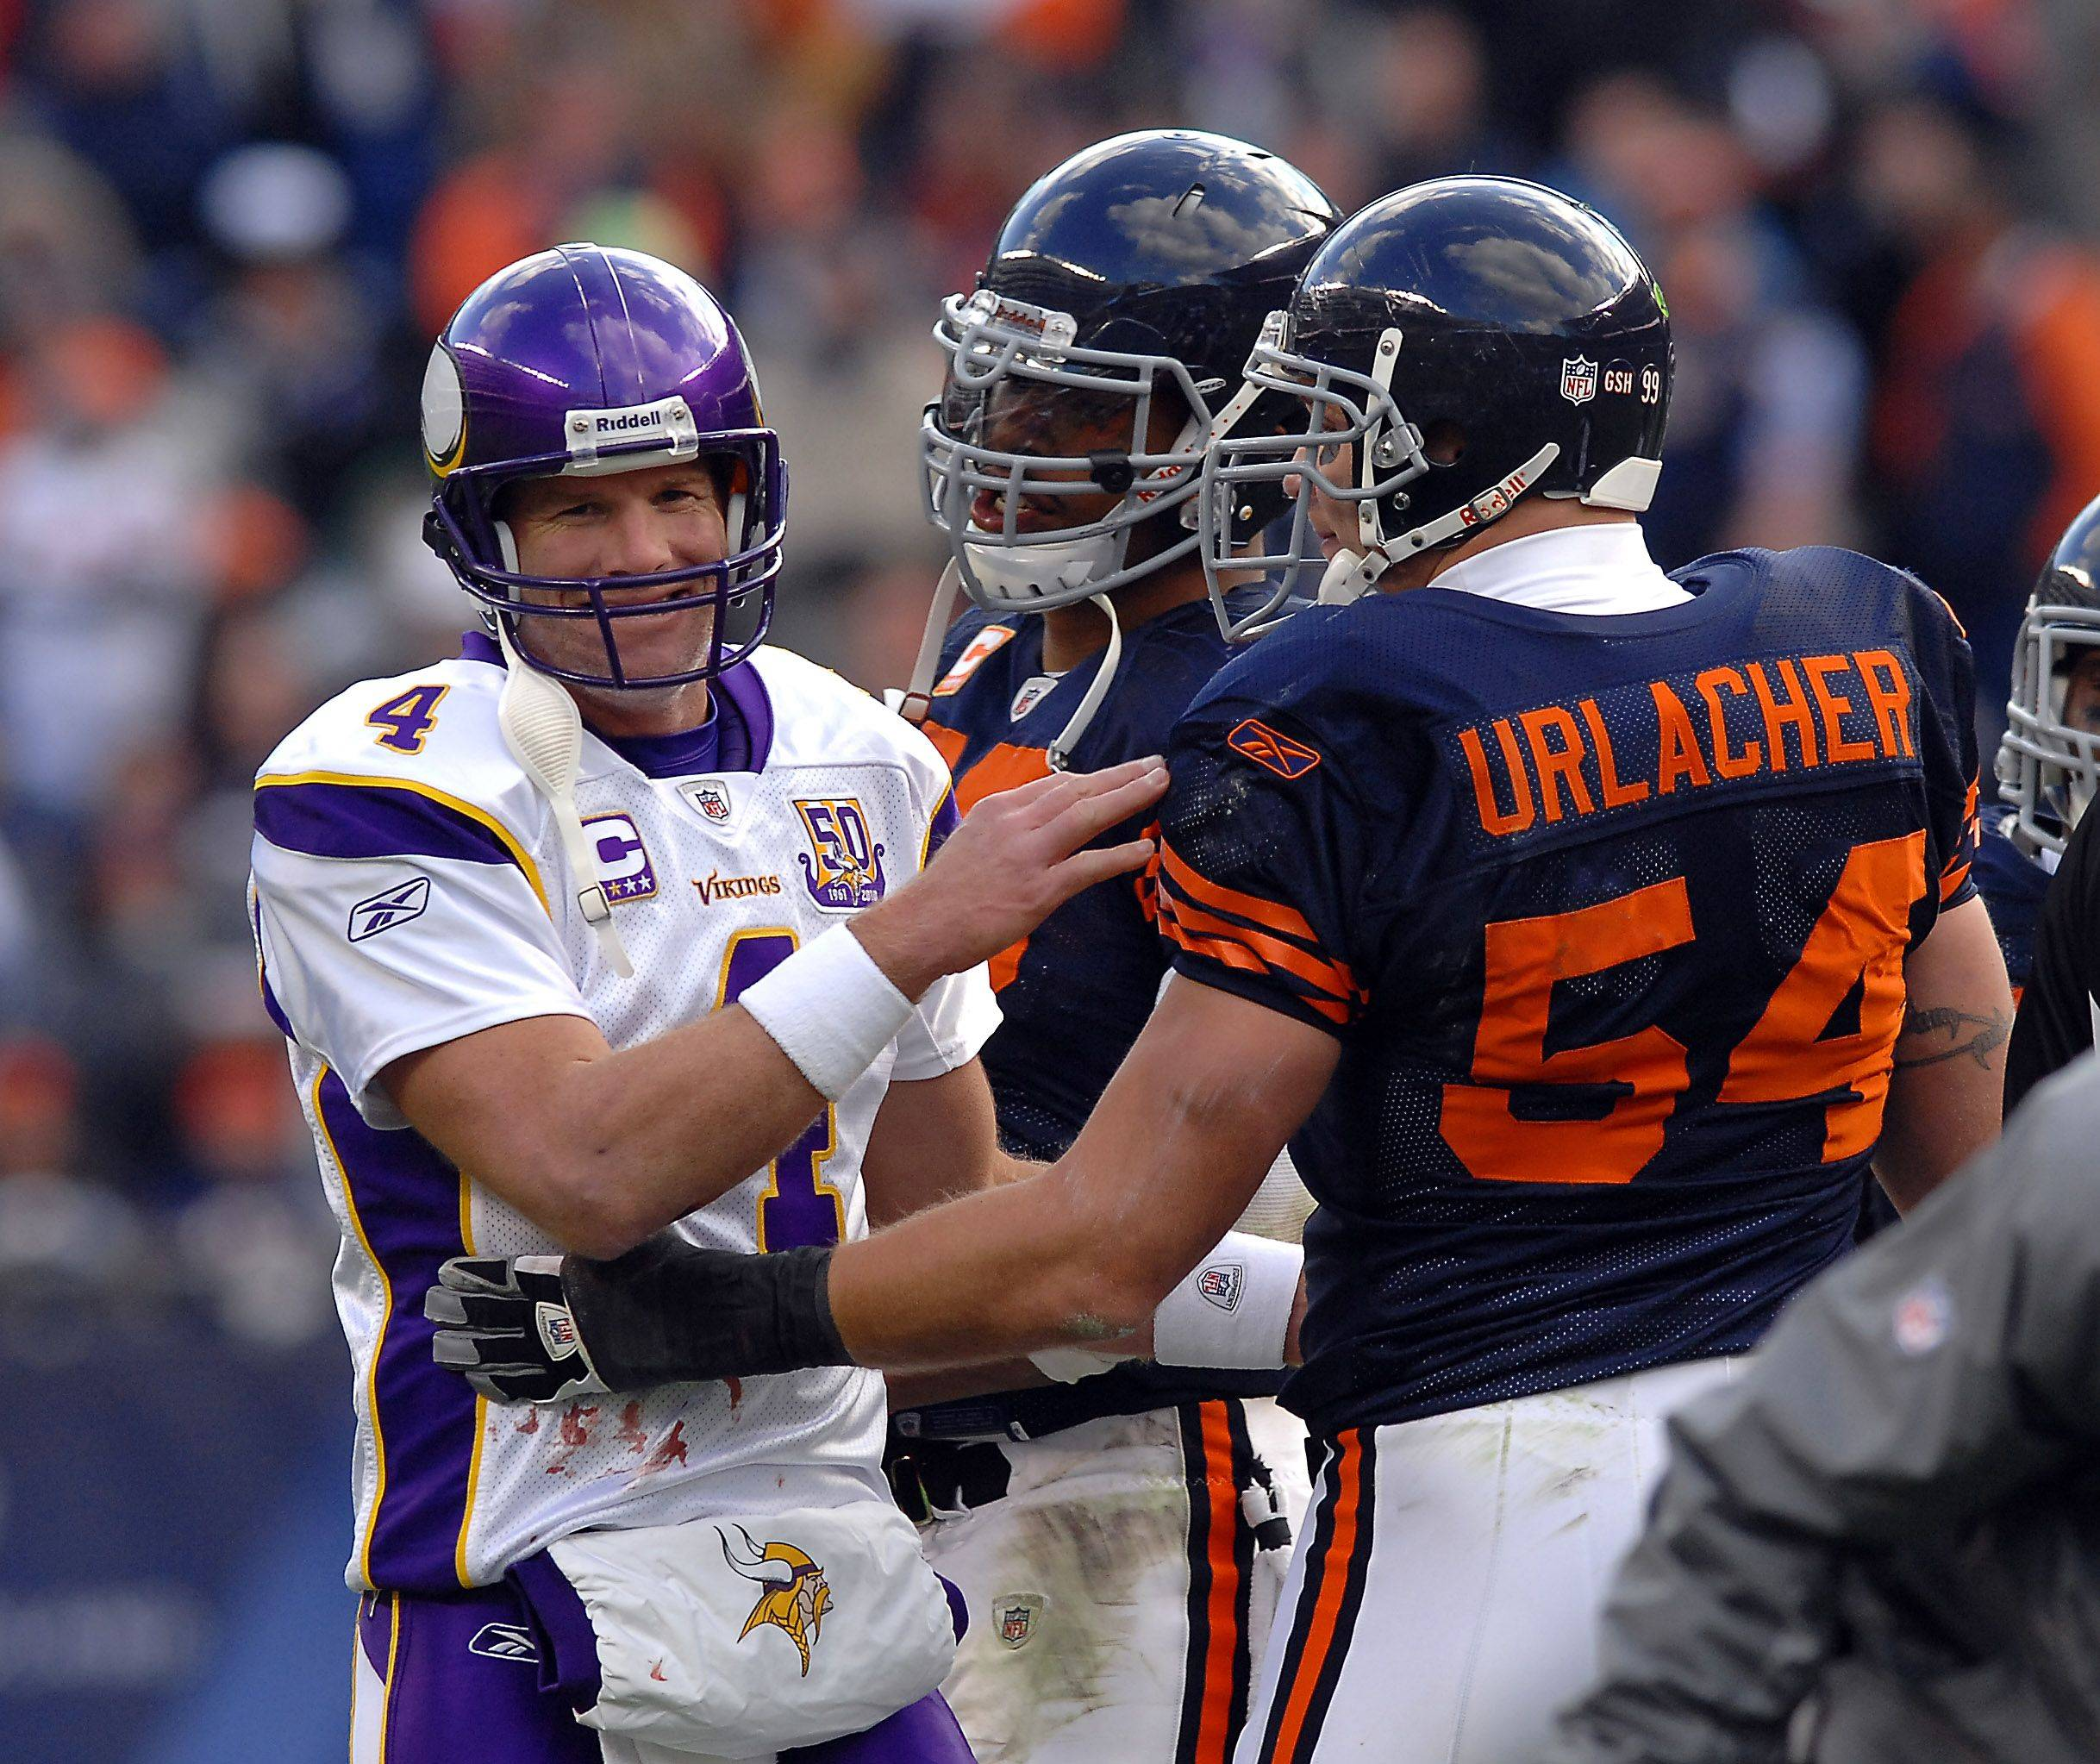 Minnesota's Brett Favre and Chicago Bears Brian Urlacher share a moment during the game perhaps the last time as it might be the last season for Favre.